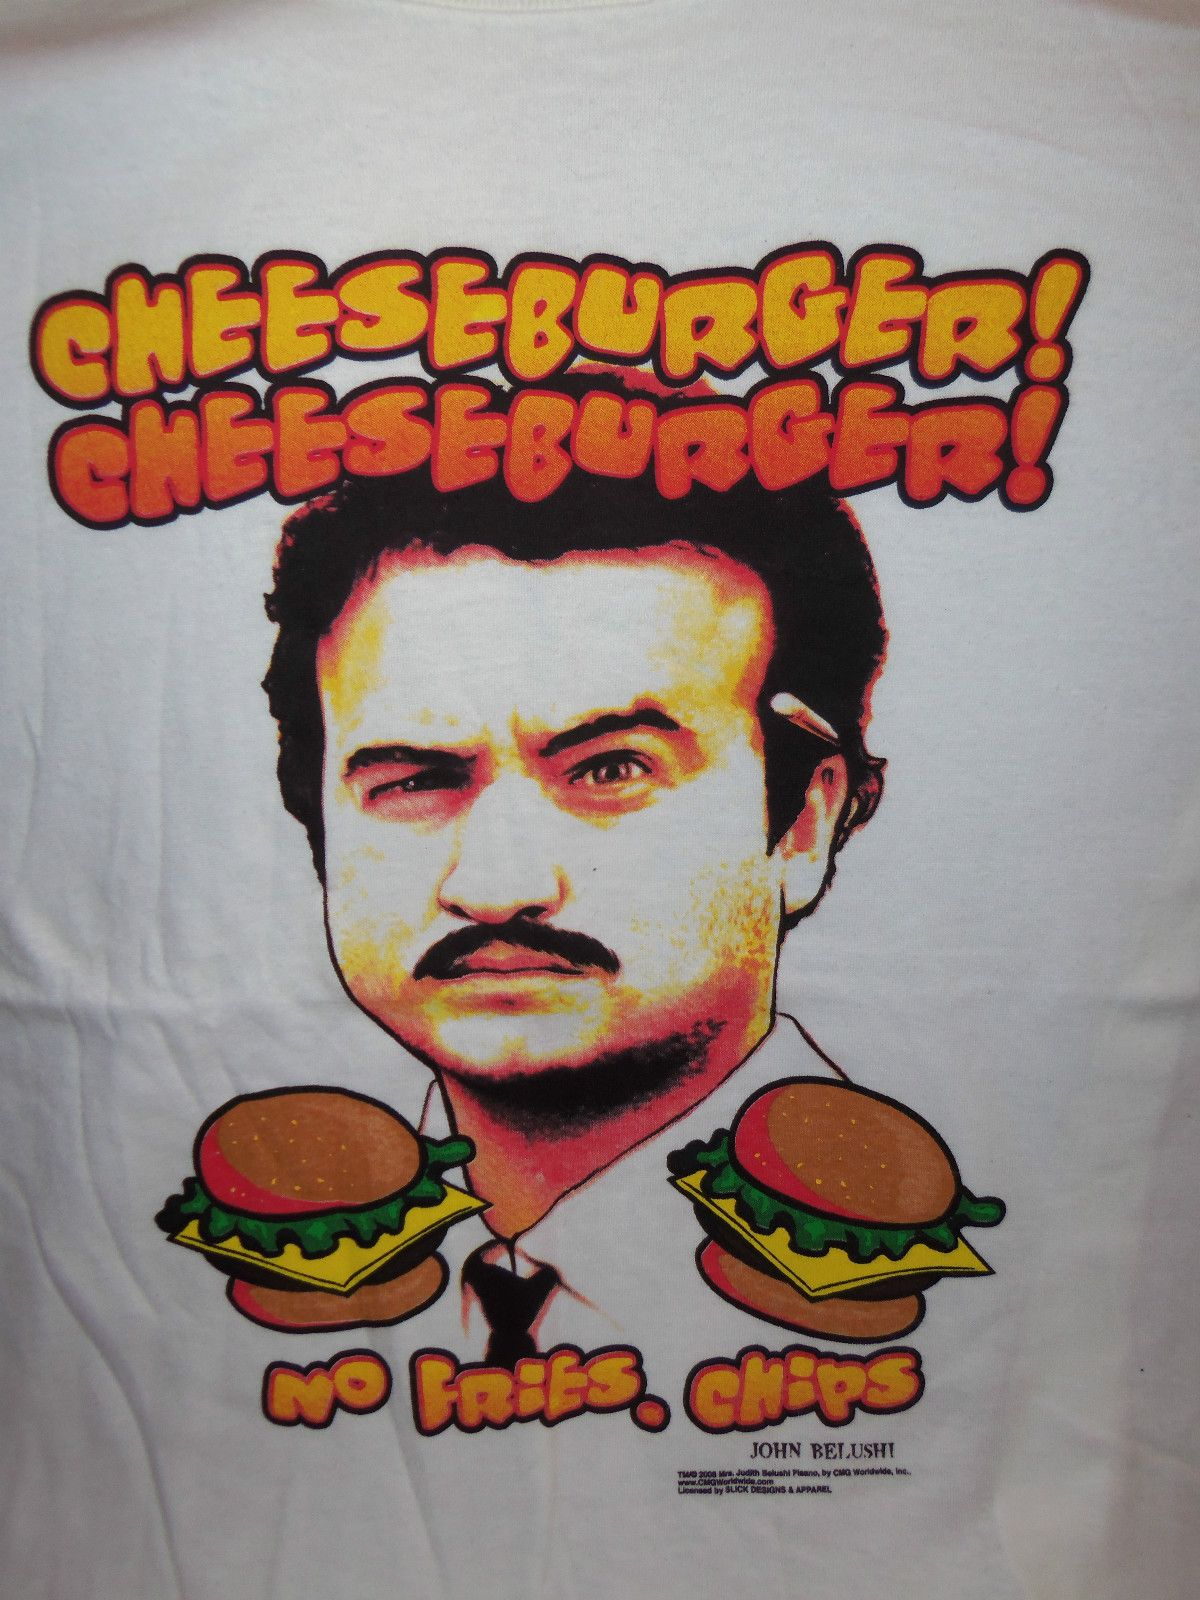 Image result for john belushi cheeseburger cheeseburger